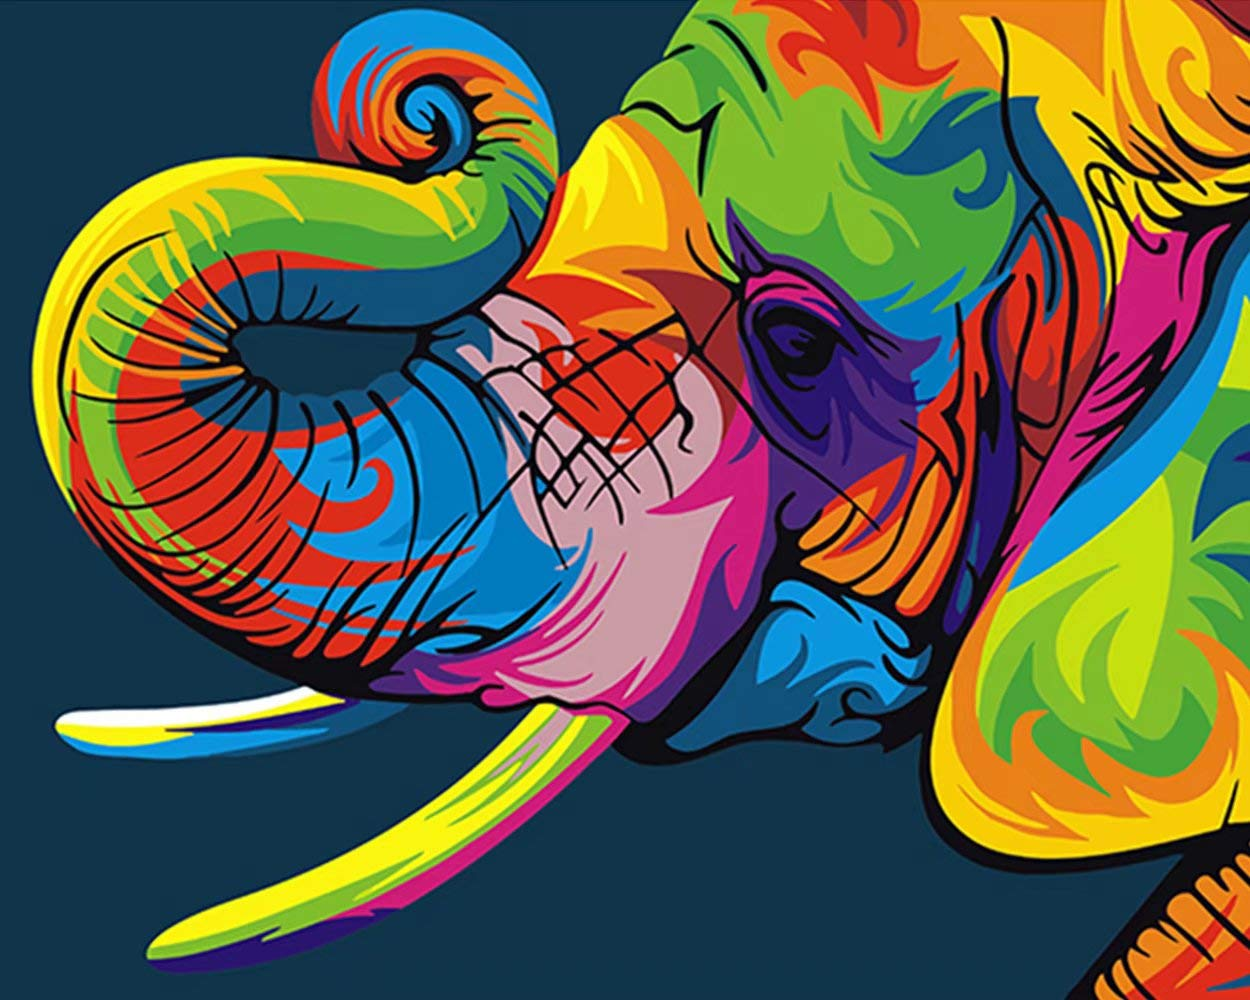 Colourful Animated Elephant painting